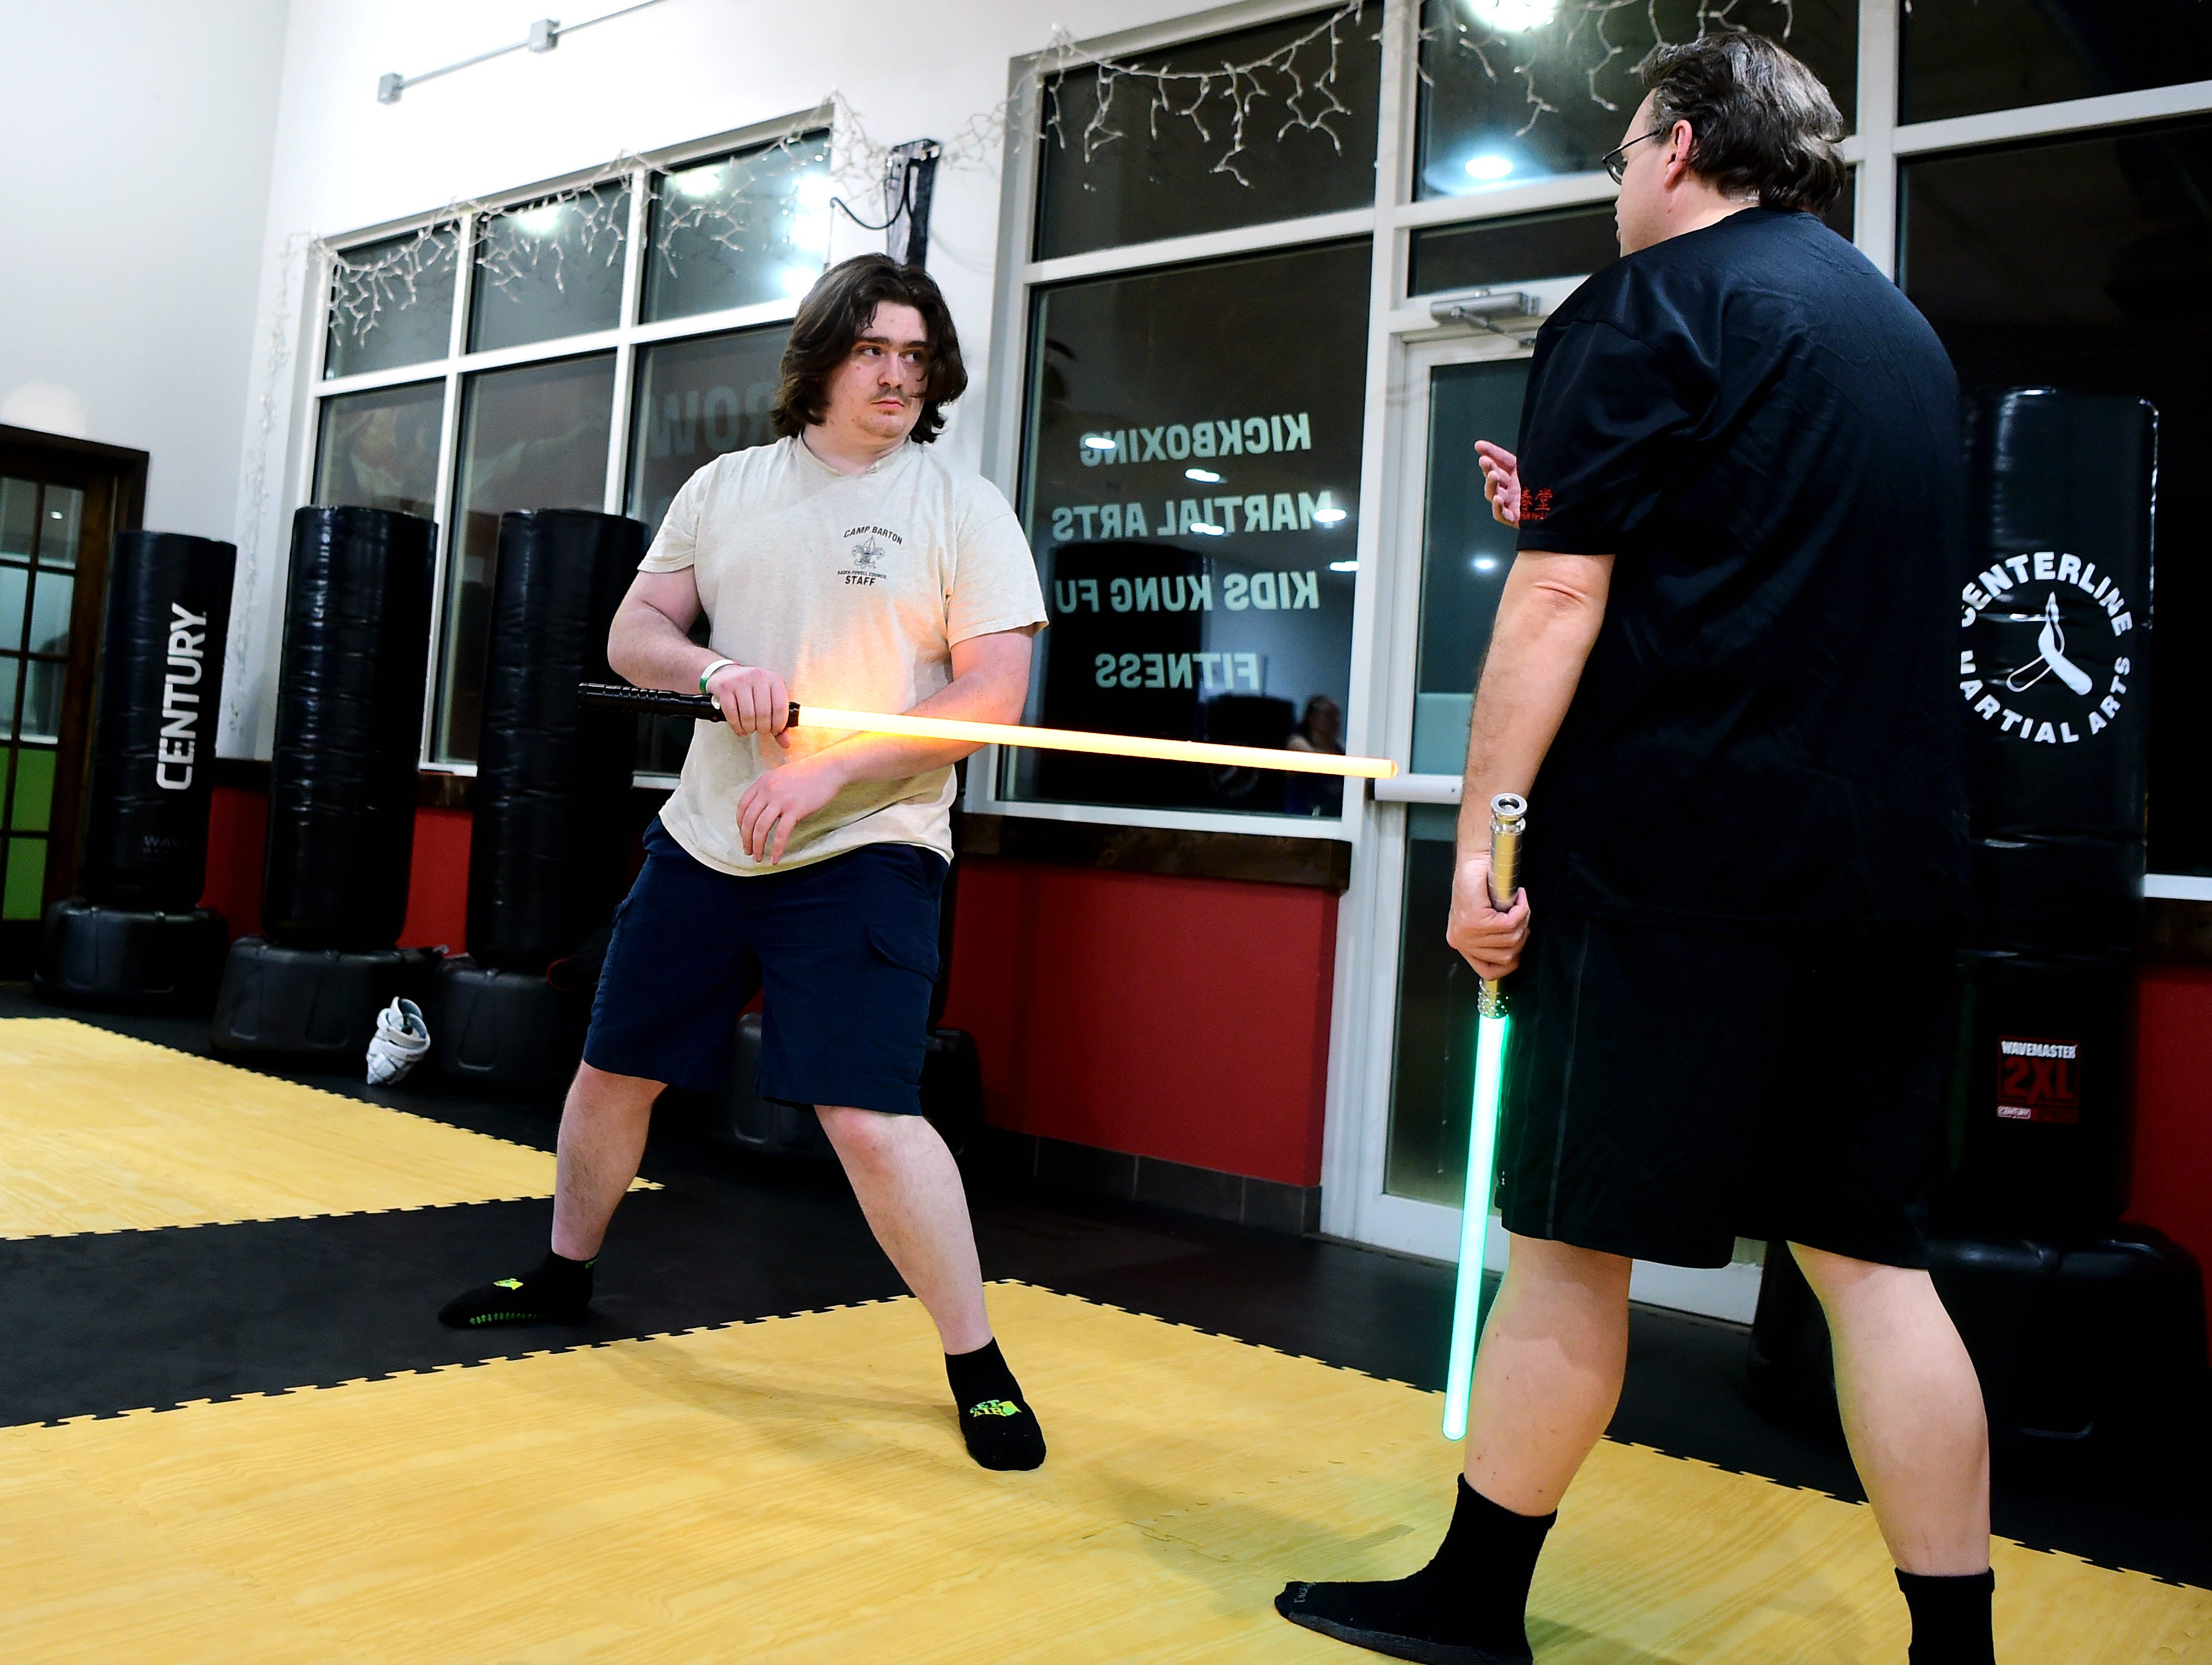 Ithaca Sabers approaches lightsaber combat as a martial art and meets weekly at Centerline Fitness & Martial Arts in Ithaca.  February 4, 2019.